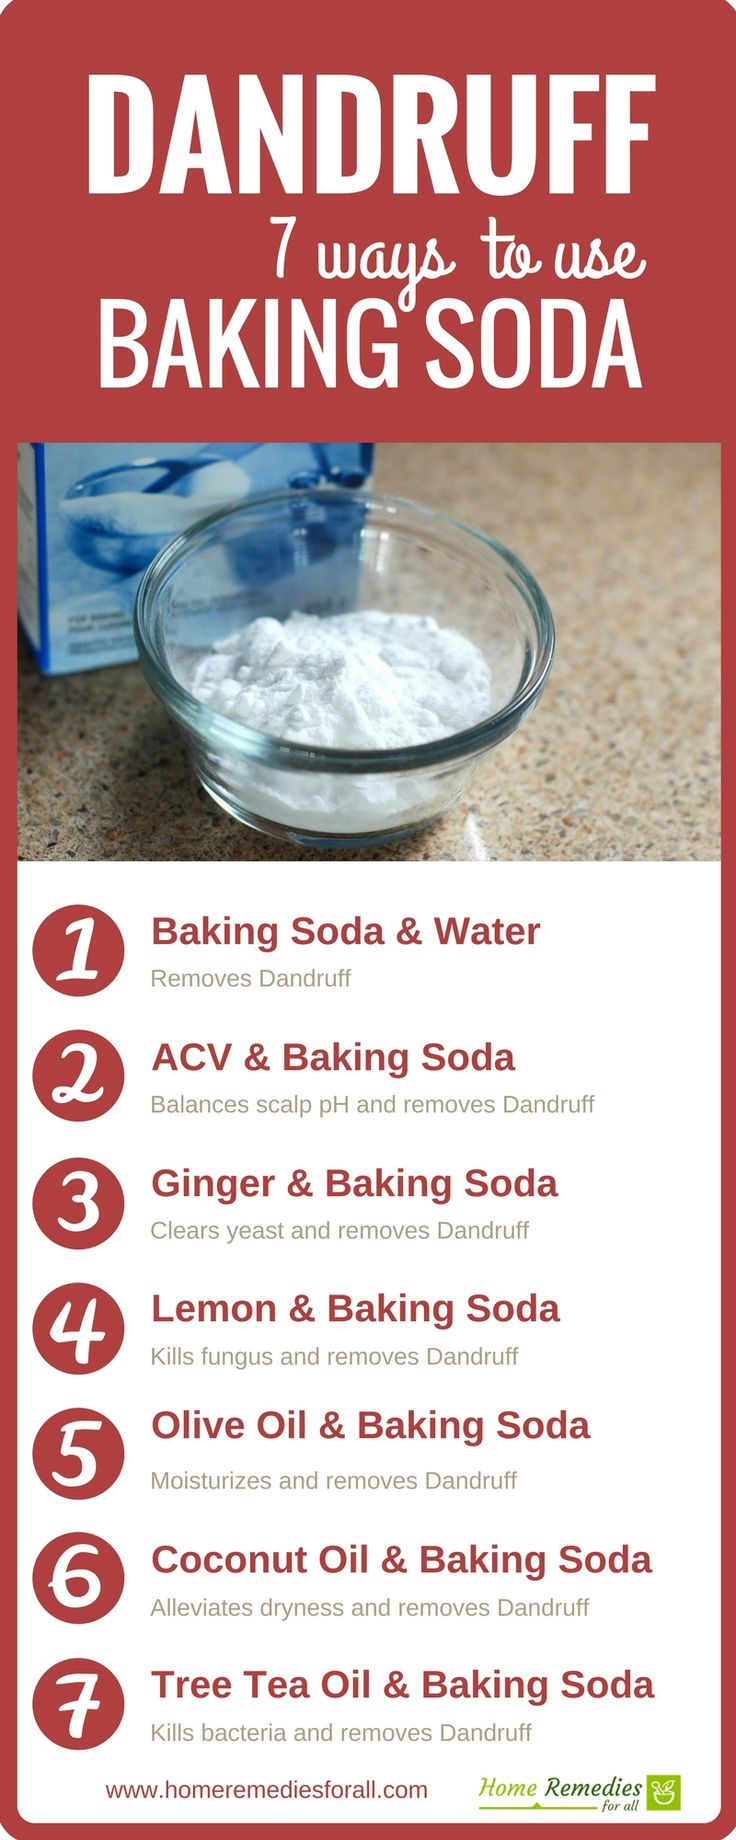 Use baking soda to remove dandruff. The best home remedies for dandruff have baking soda as main ingredient.